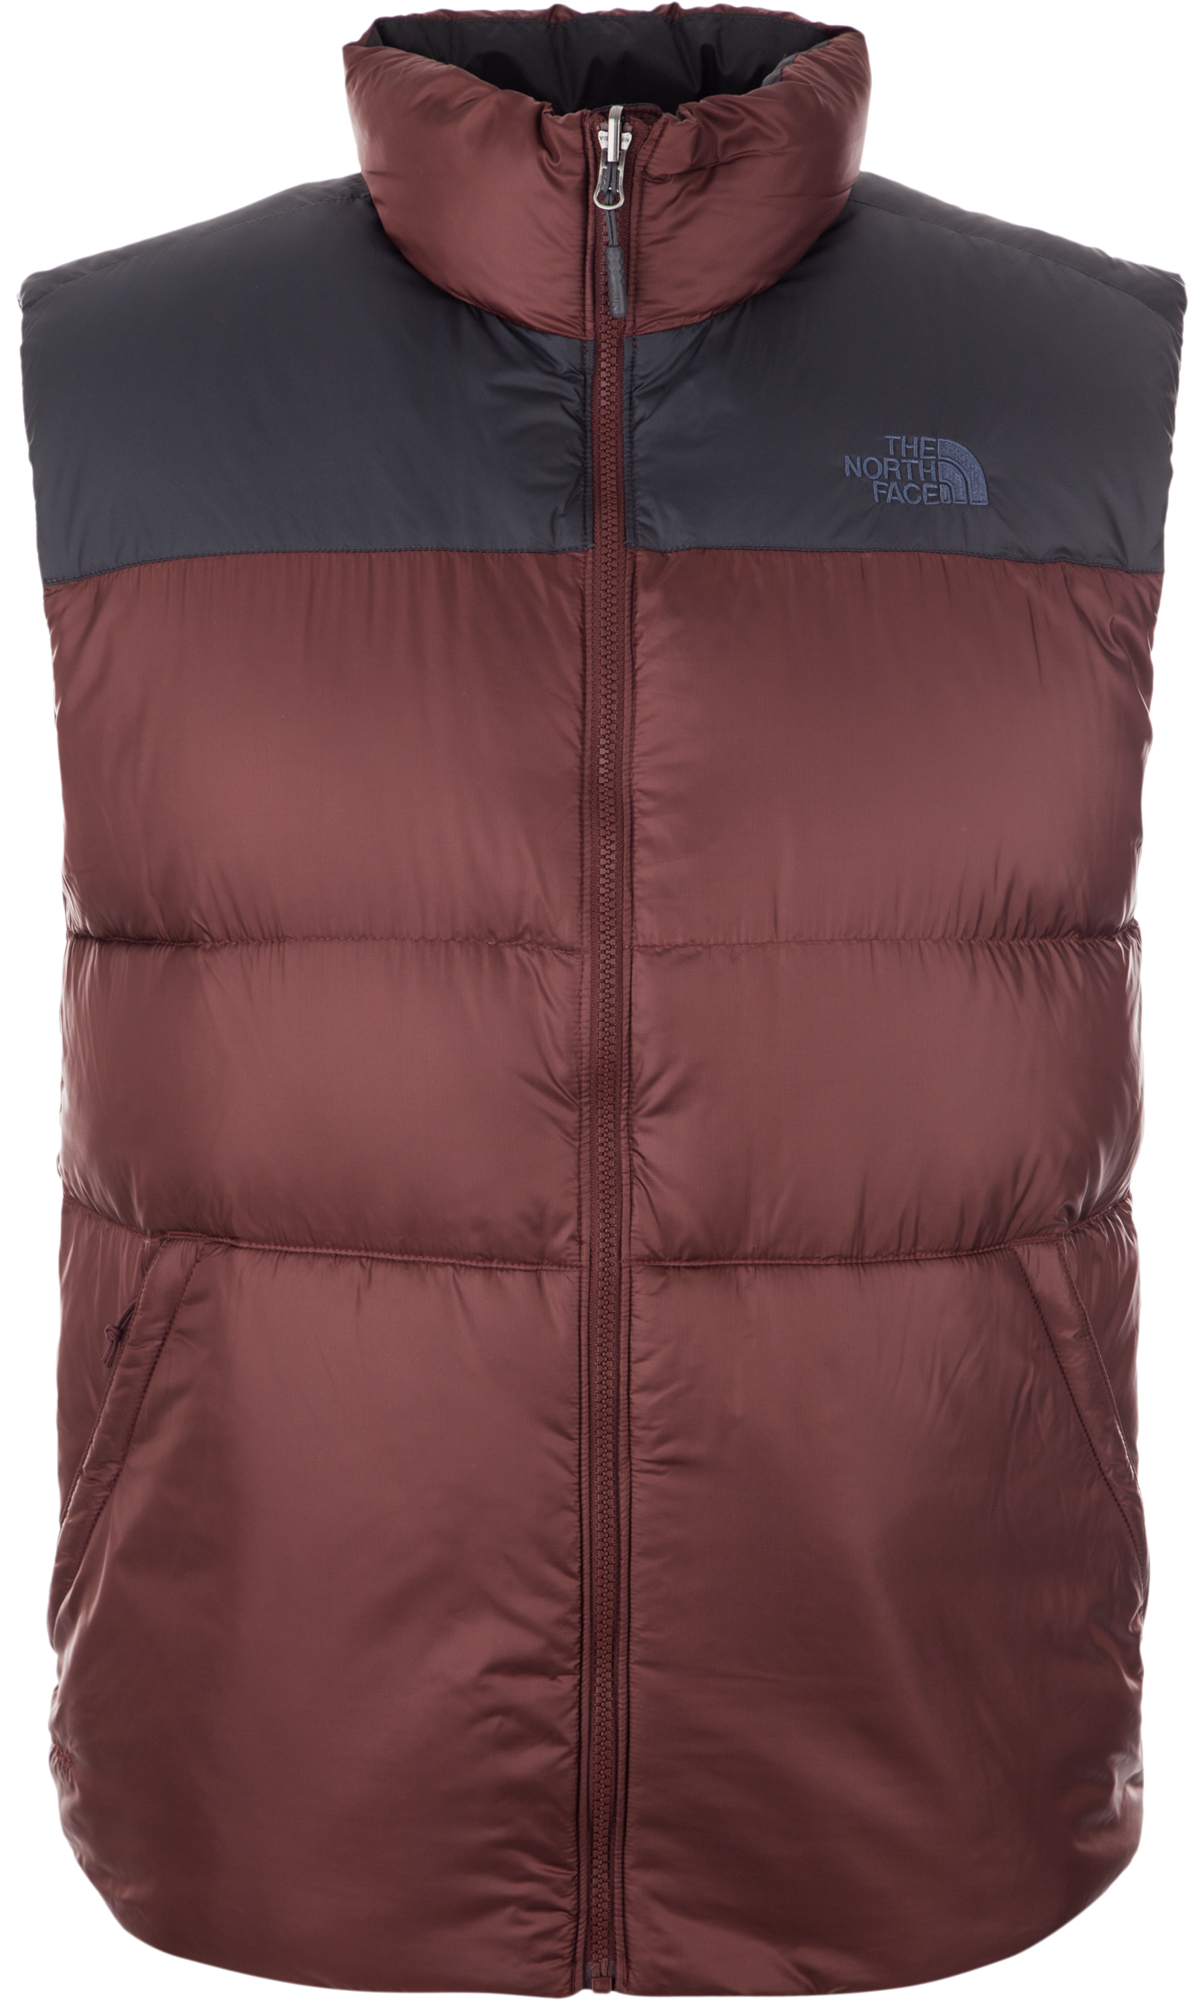 The North Face Жилет пуховой мужской The North Face Nuptse III Vest the north face бермуды